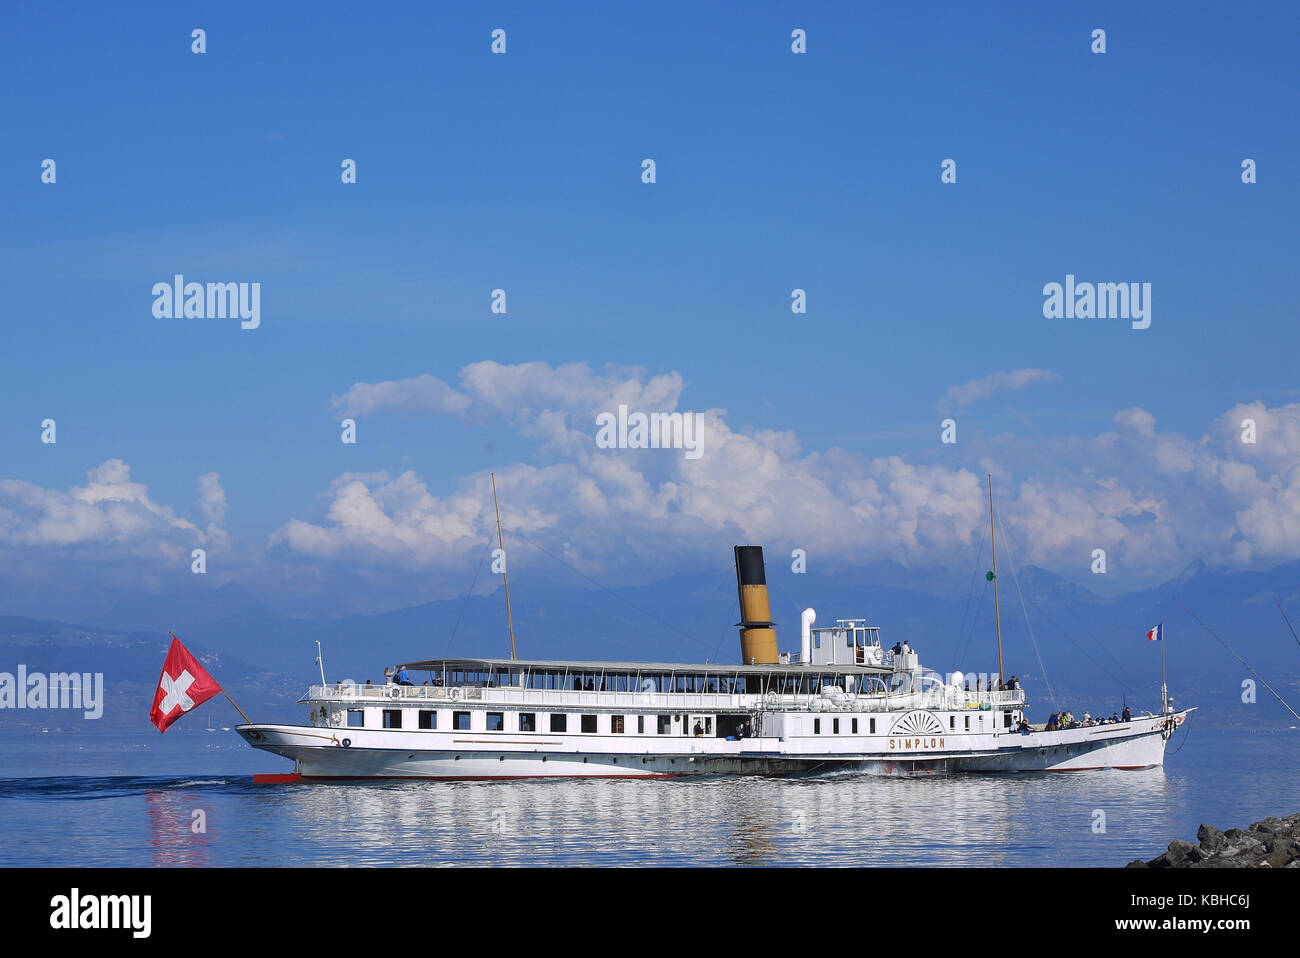 Steamboat 'Simplon' sails to Evian-les-Bains, Leman Lake, France - Stock Image